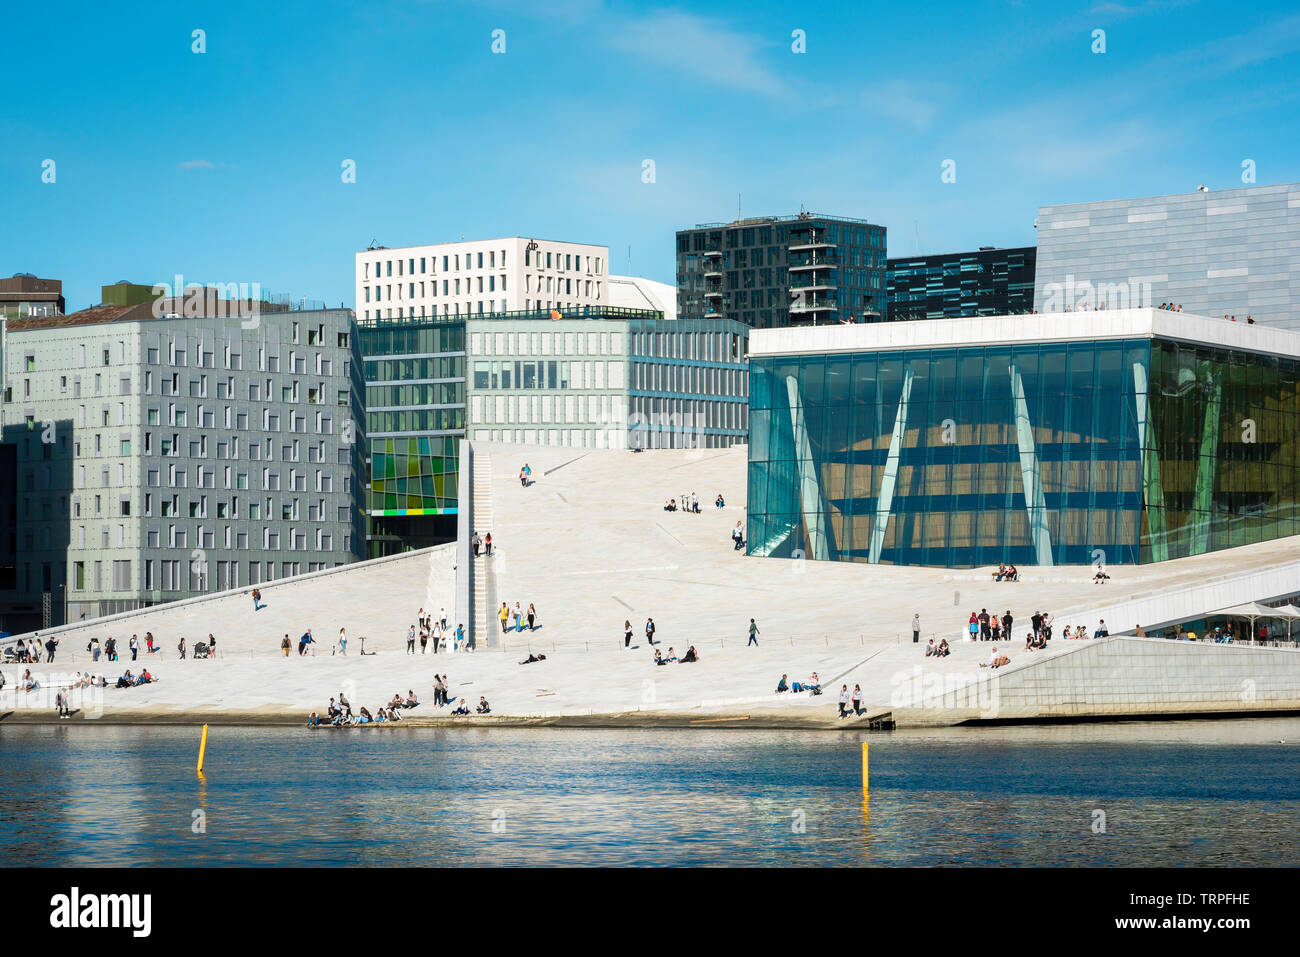 Opera House Oslo, view across the fjord of people on the vast access ramp leading to the roof of the Oslo Opera House, with Barcode Buildings beyond. Stock Photo